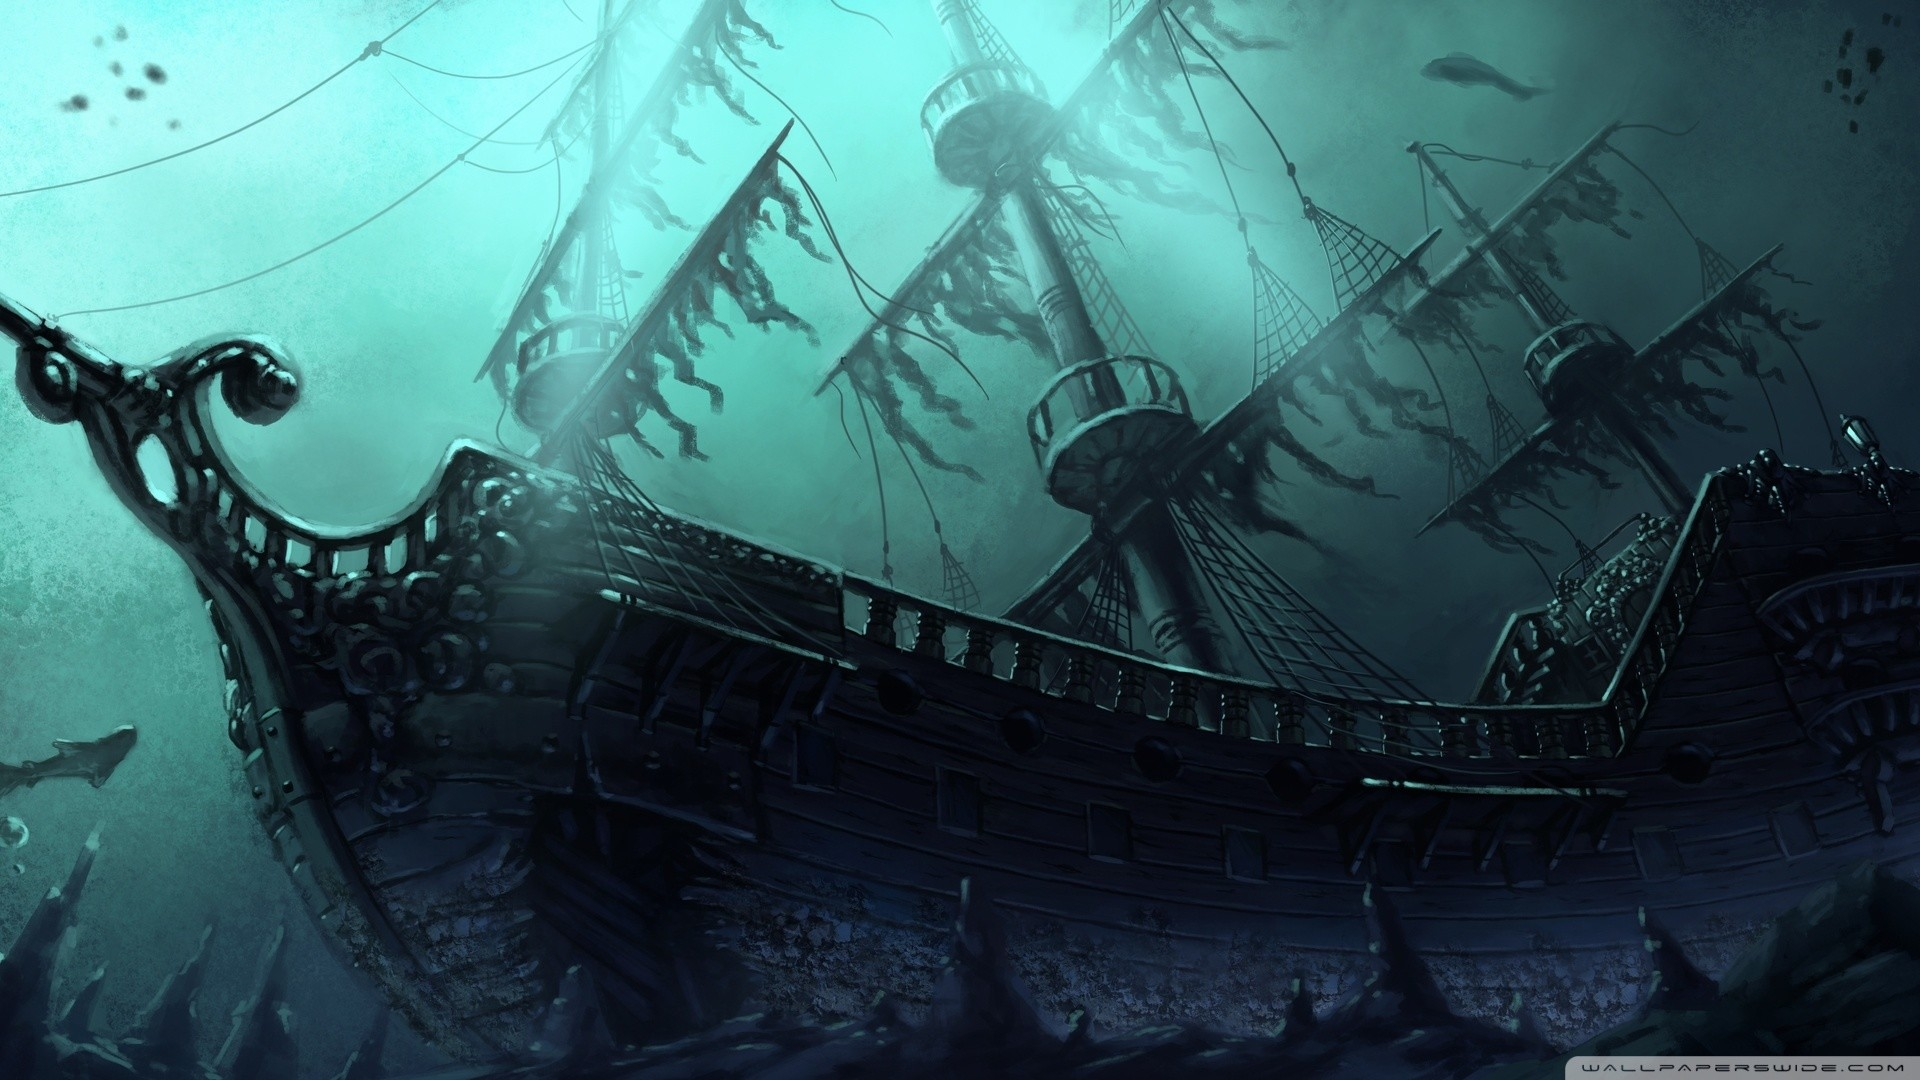 1920x1080 pirate ships wallpaper